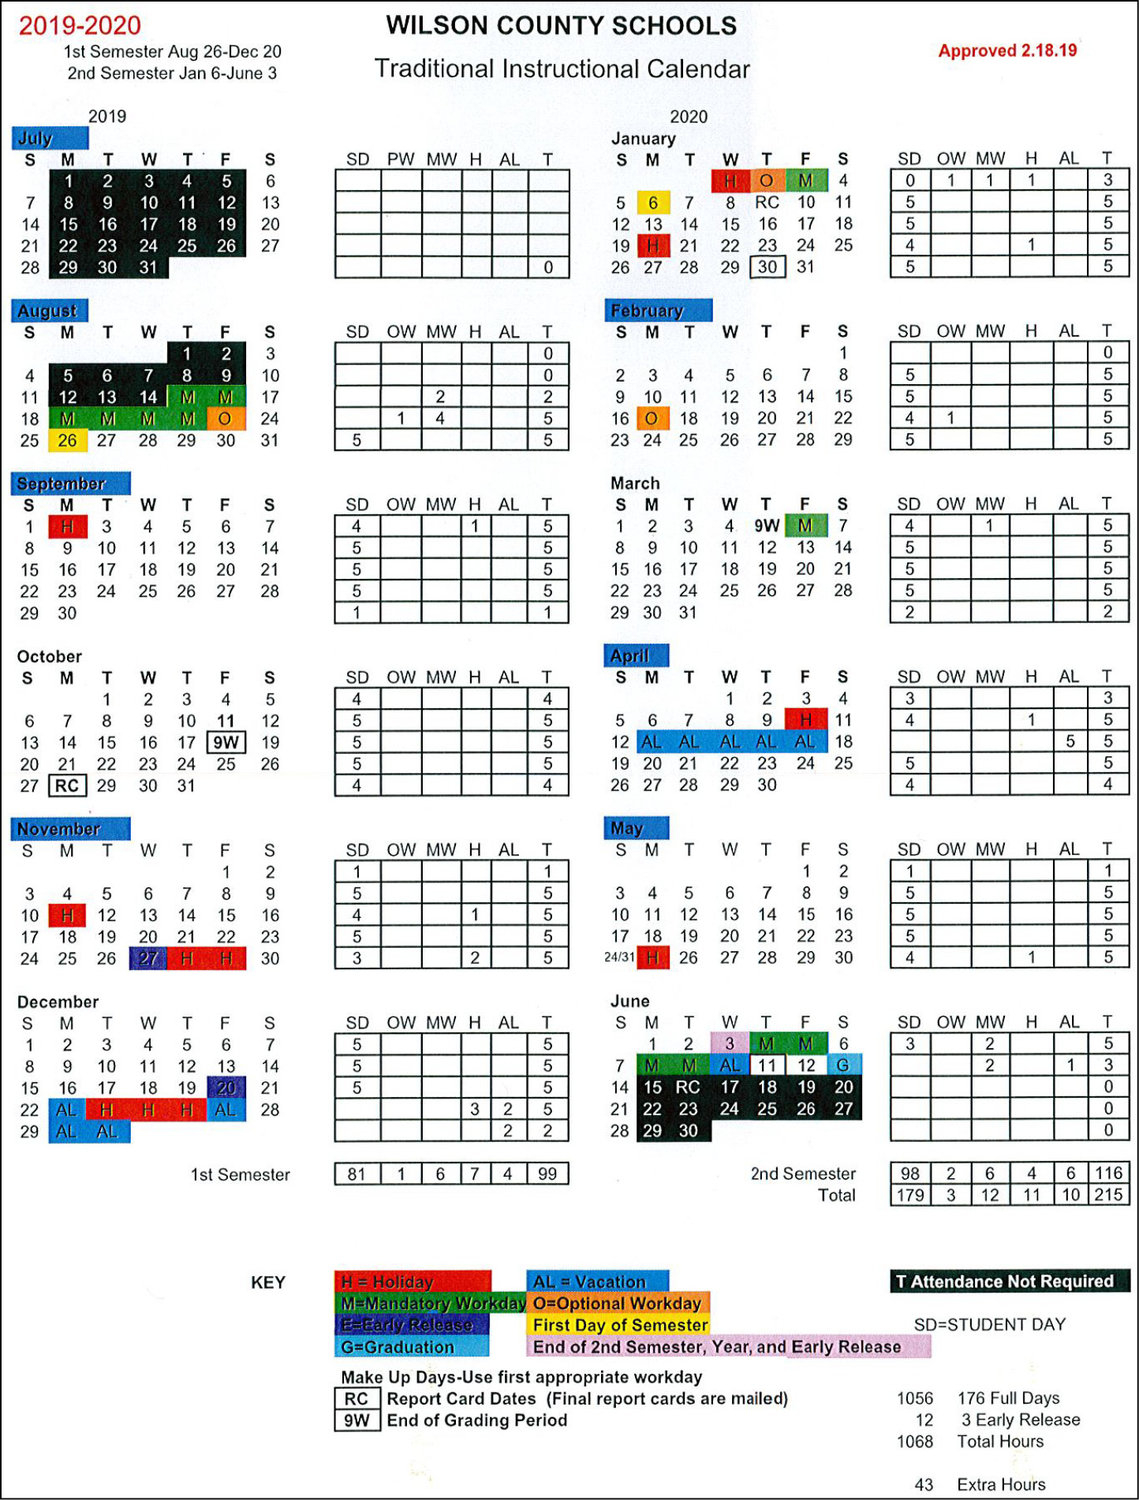 School Board Approves 2019 20 Calendars | The Wilson Times In Wake County School System Calendars